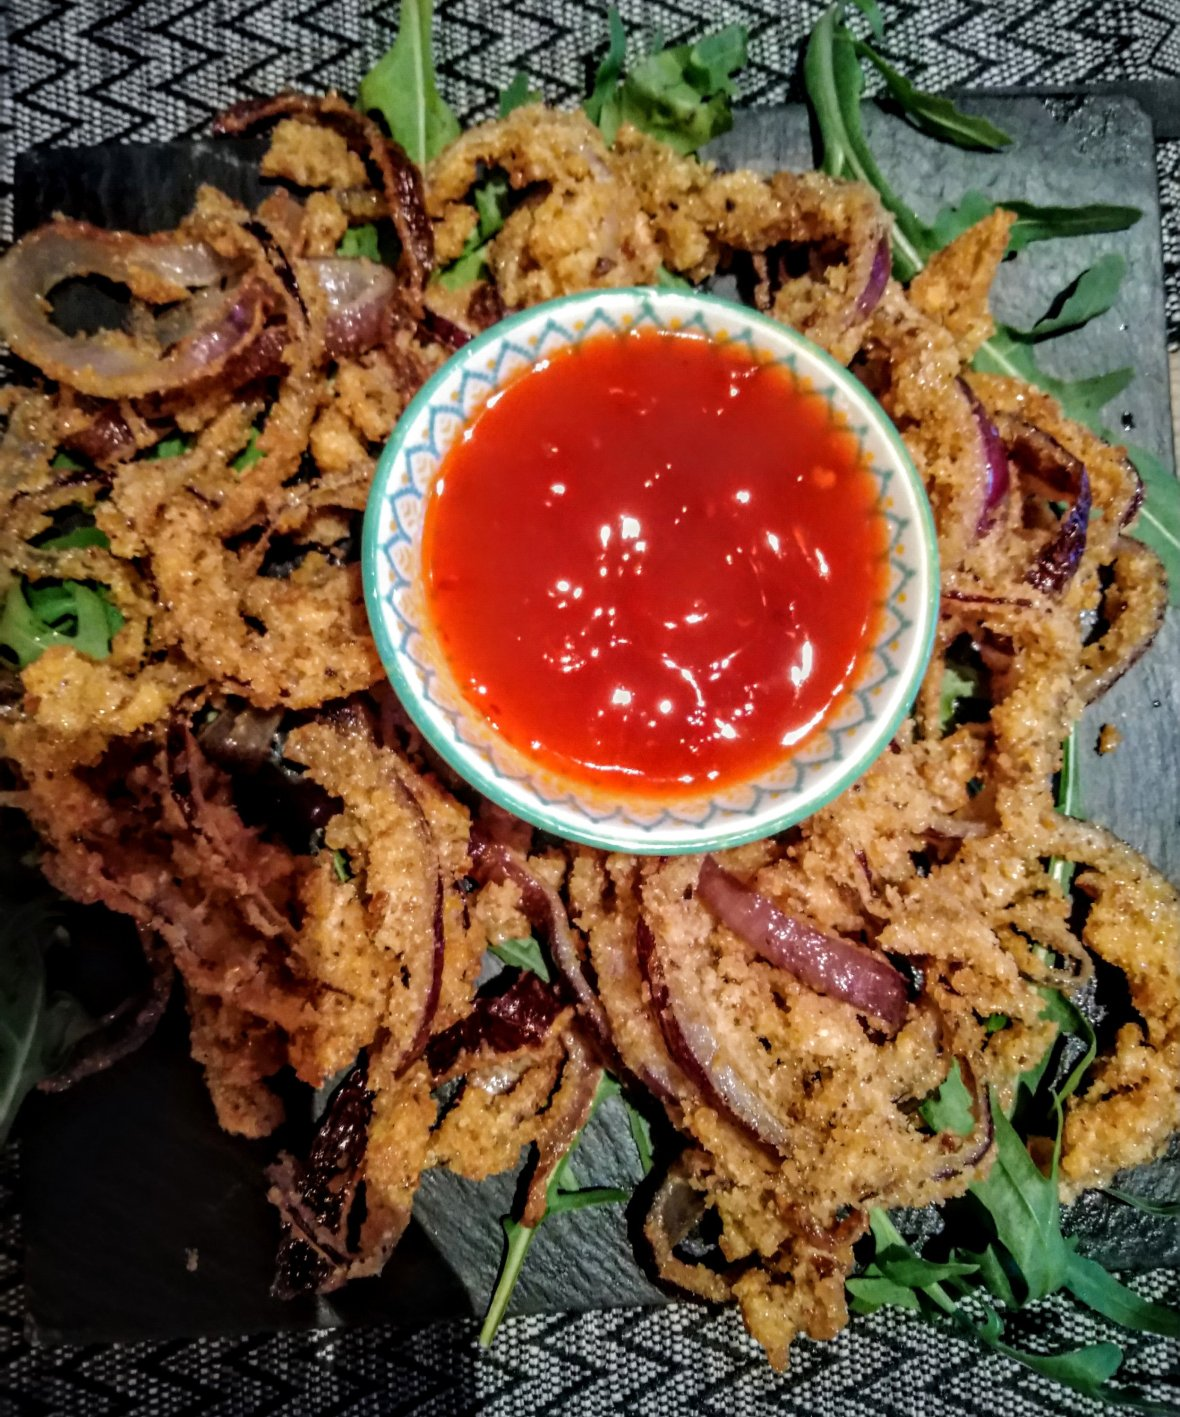 Fried onions with spicy sauce